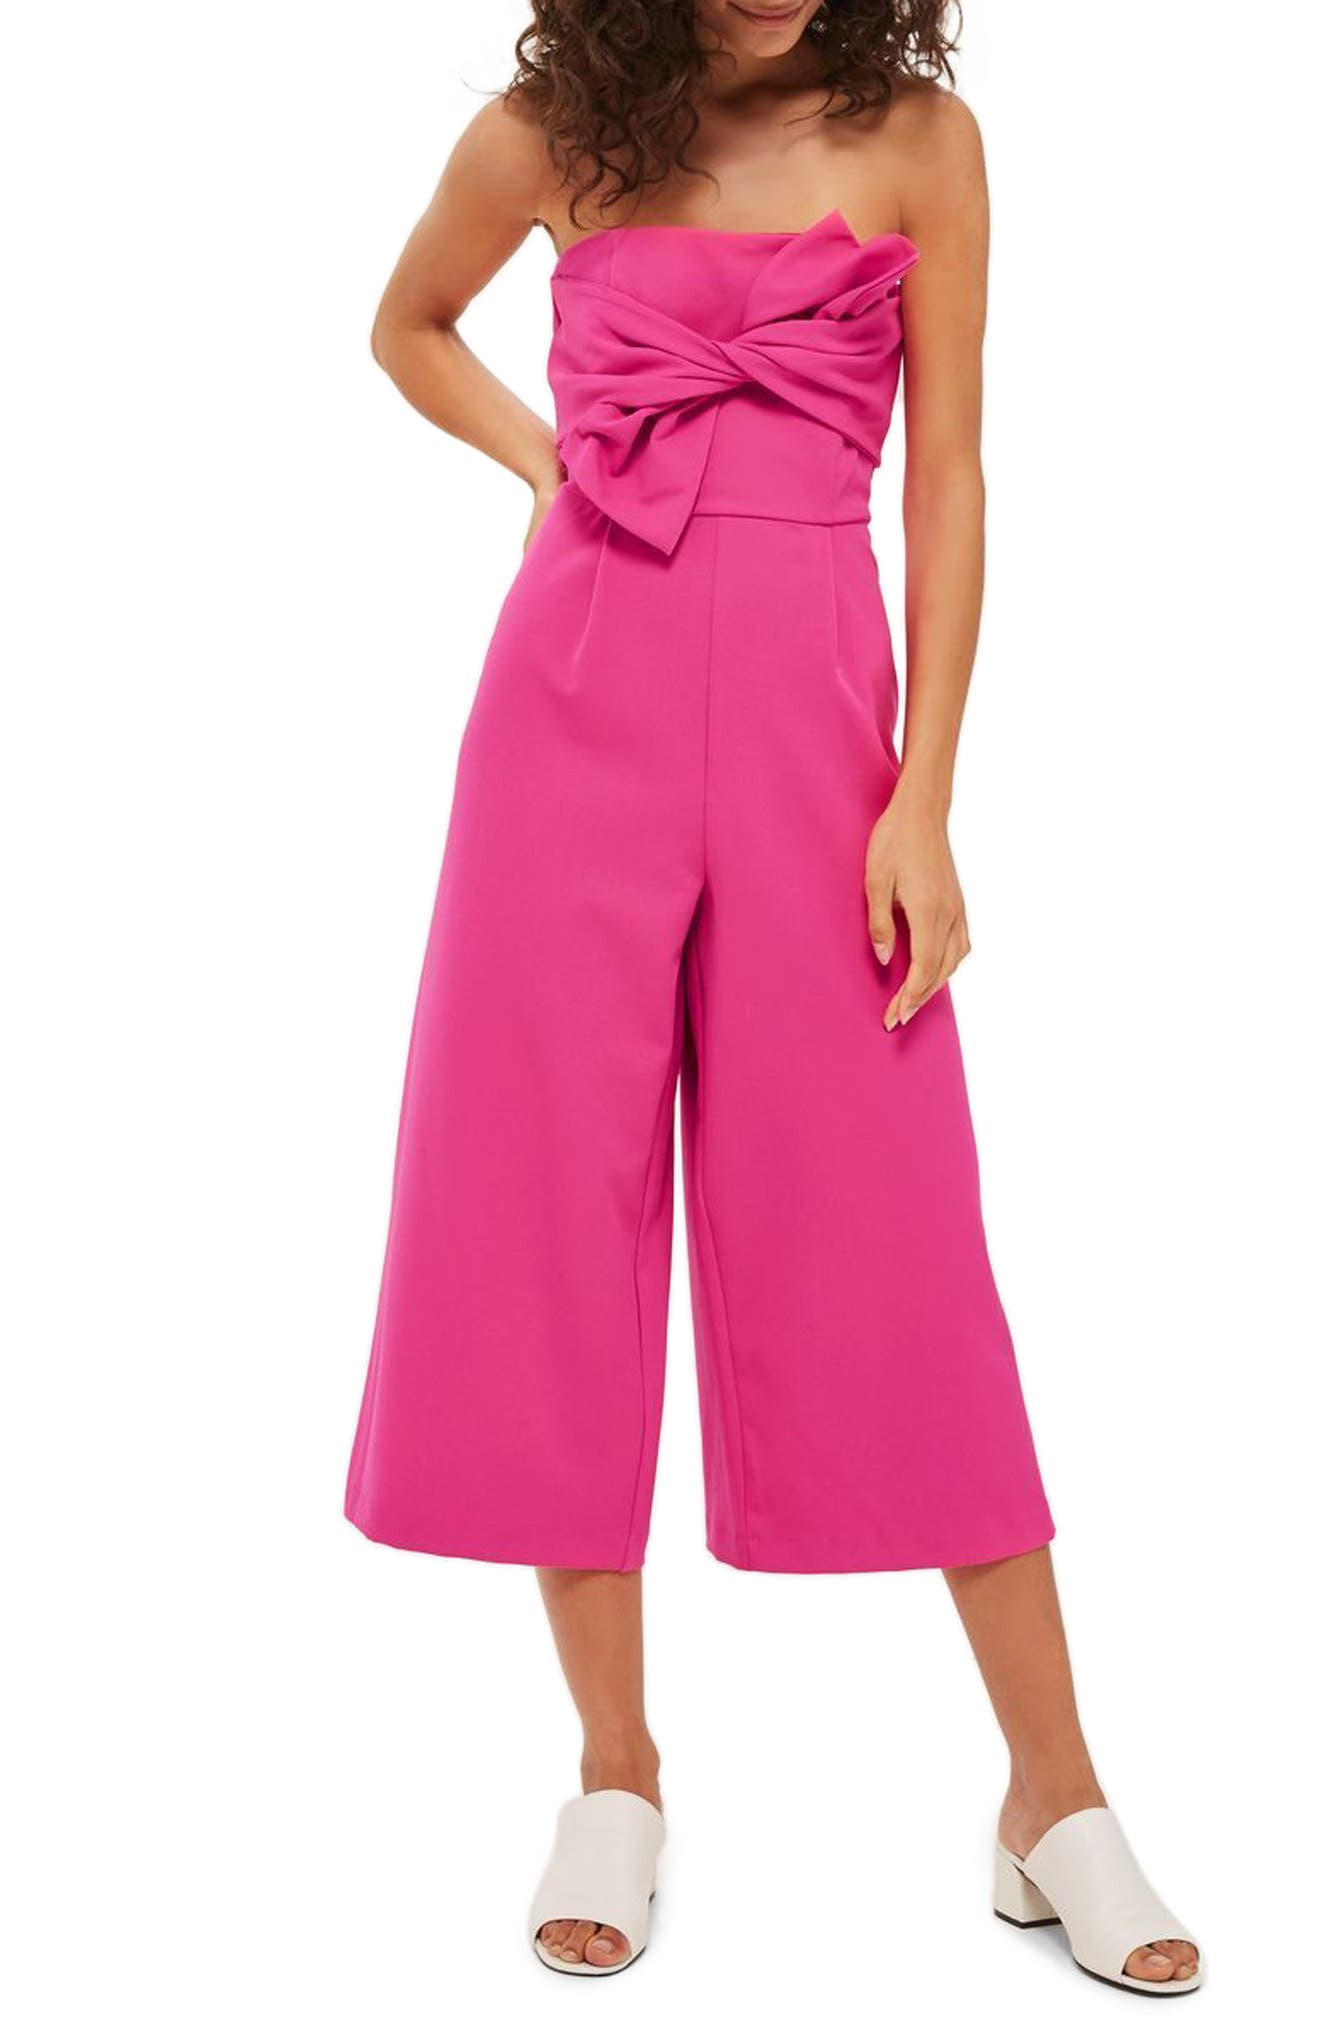 Topshop Tie Twist Crop Jumpsuit